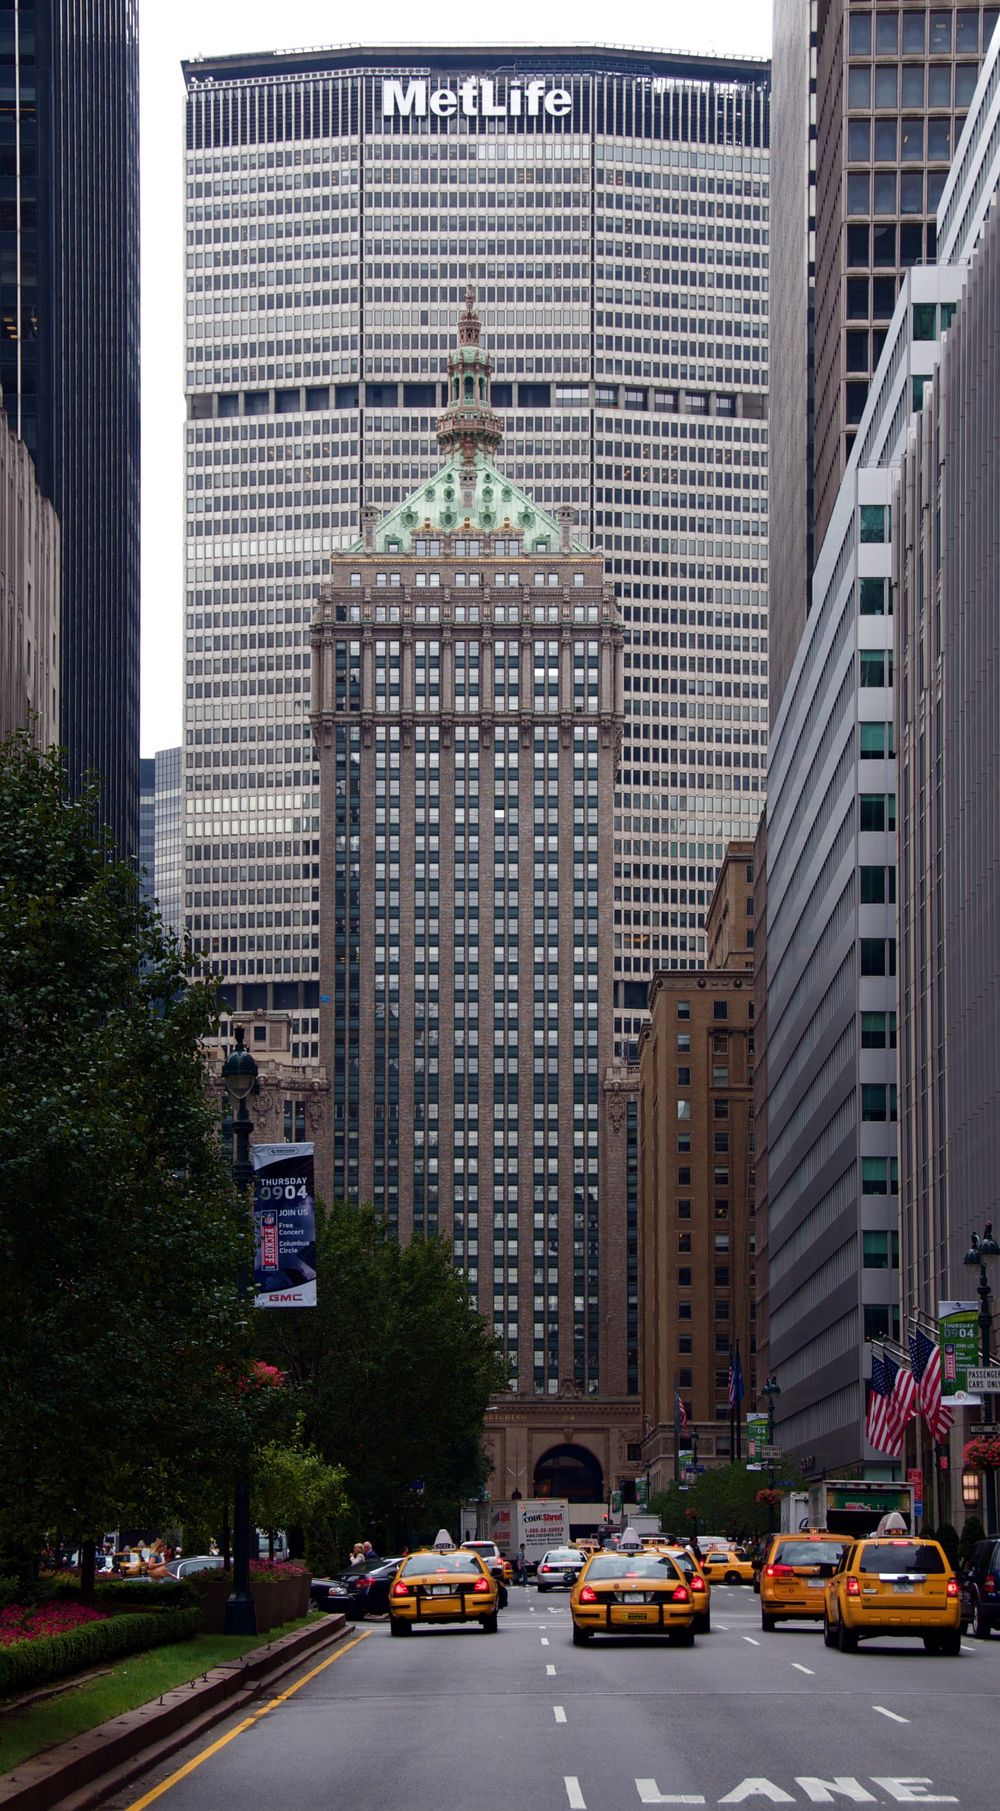 Park_Avenue_directly_heading_for_Helmsley_Building_and_Met_Life_Building.jpg